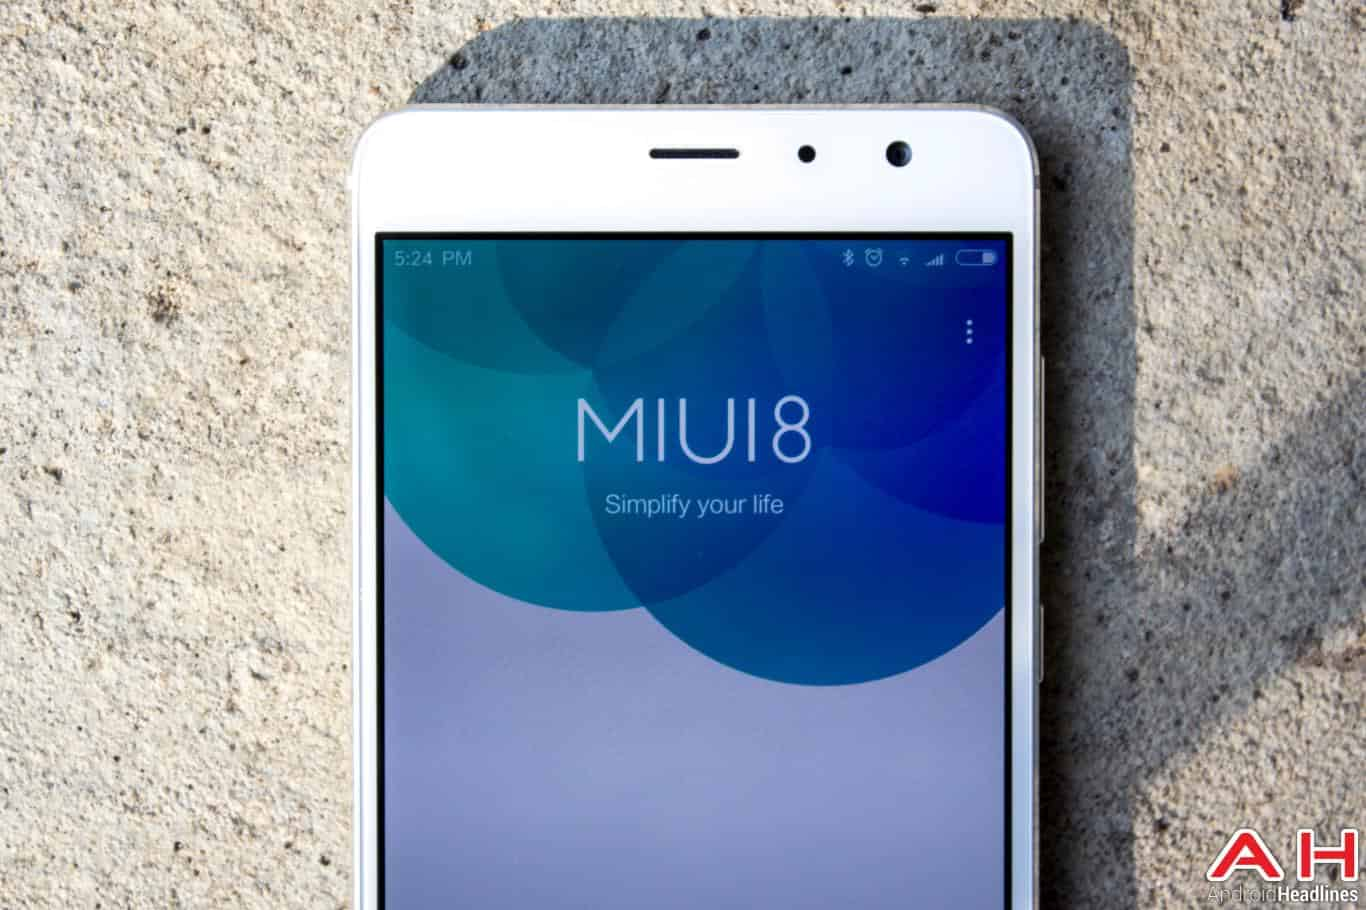 miui 8 amp 5 more android icon packs free for the time being